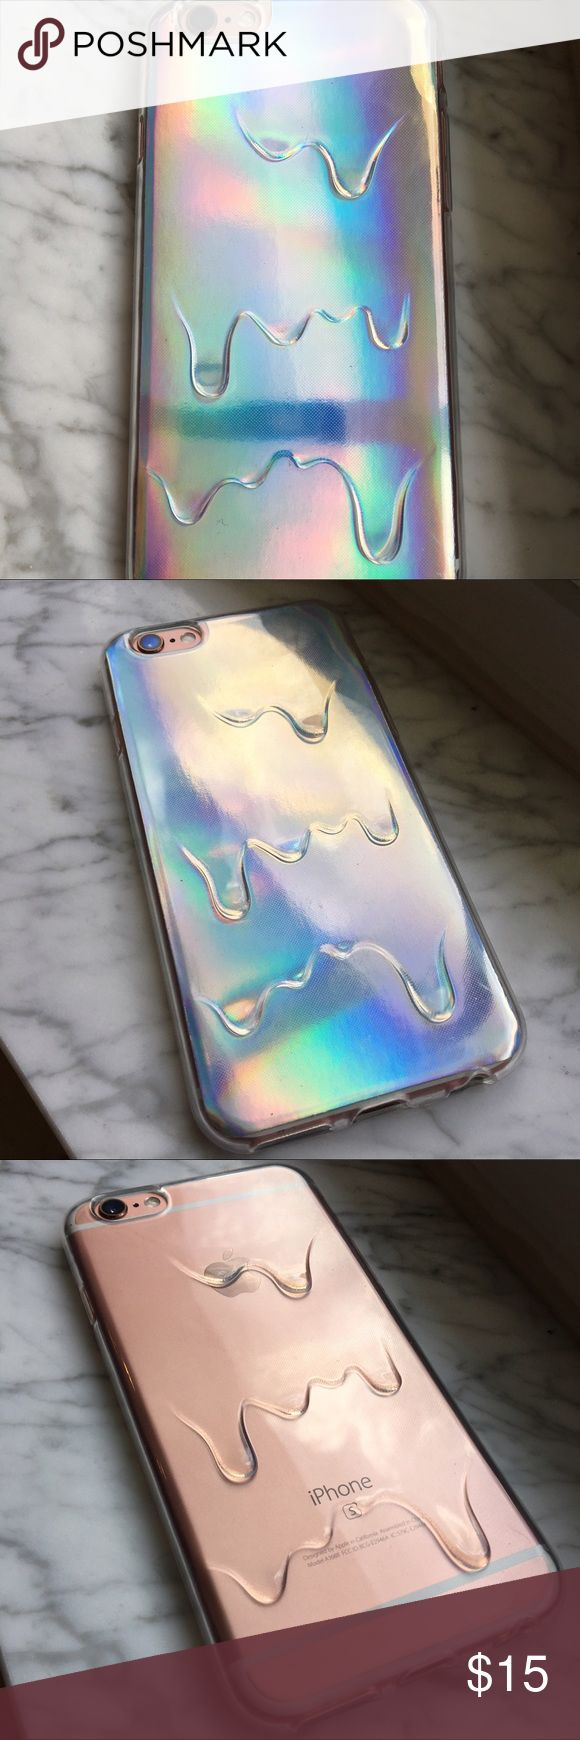 Holographic Drip Phone Case  Dope trippy phone case, perfect for anyone who is into fashion trends! Has removable holographic backing so can also be worn as a clear/ transparent drip case (as pictured). Brand new, never used. For iPhone 6/6S. Cute AND protective  Accessories Phone Cases